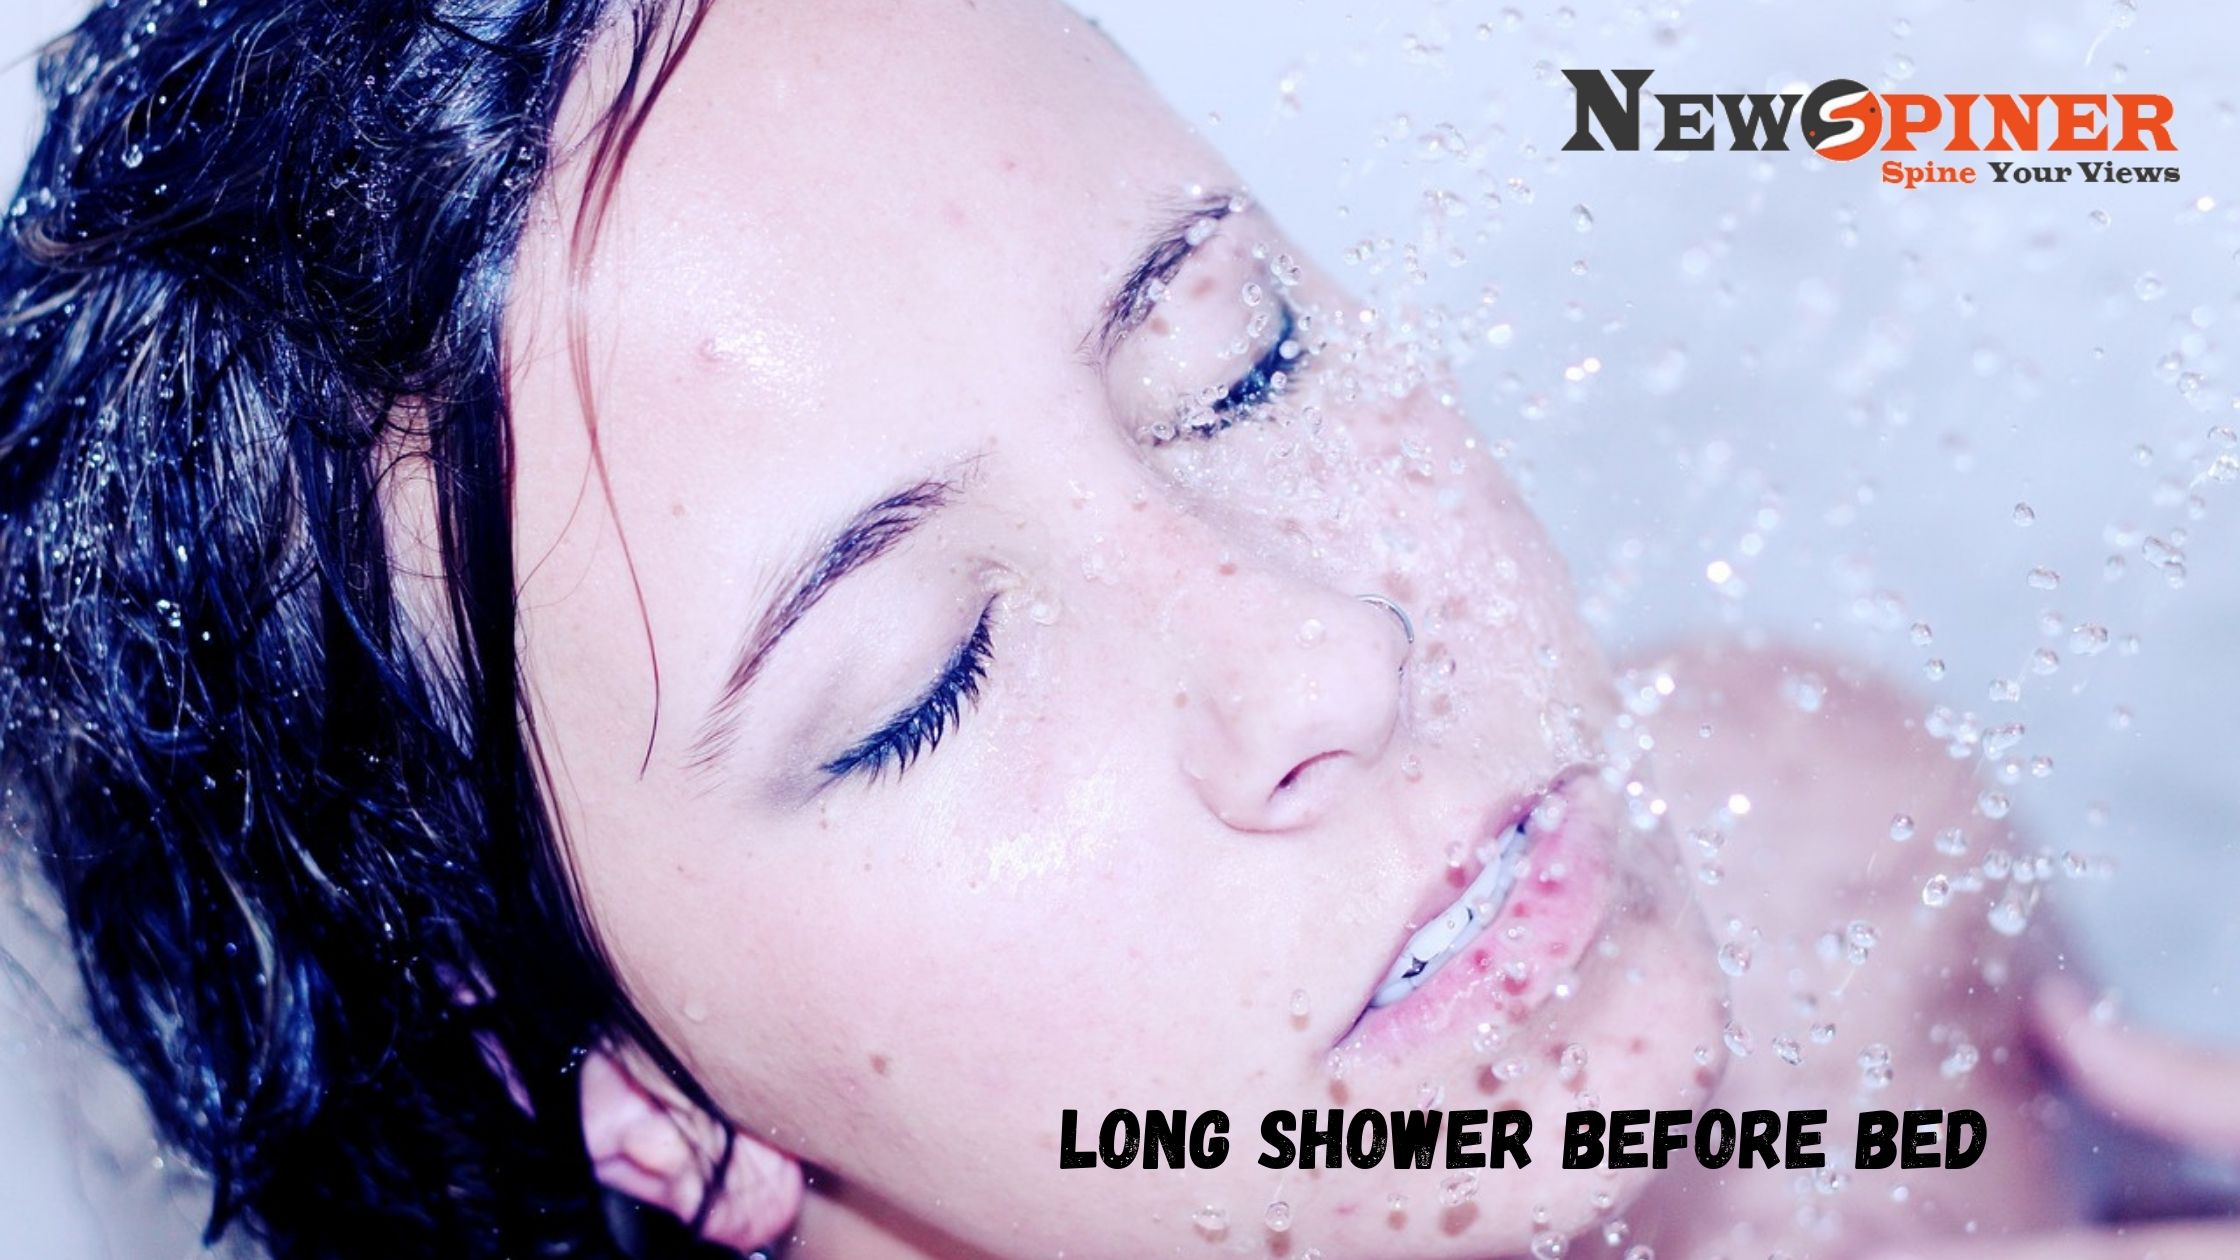 Long Shower Before Bed